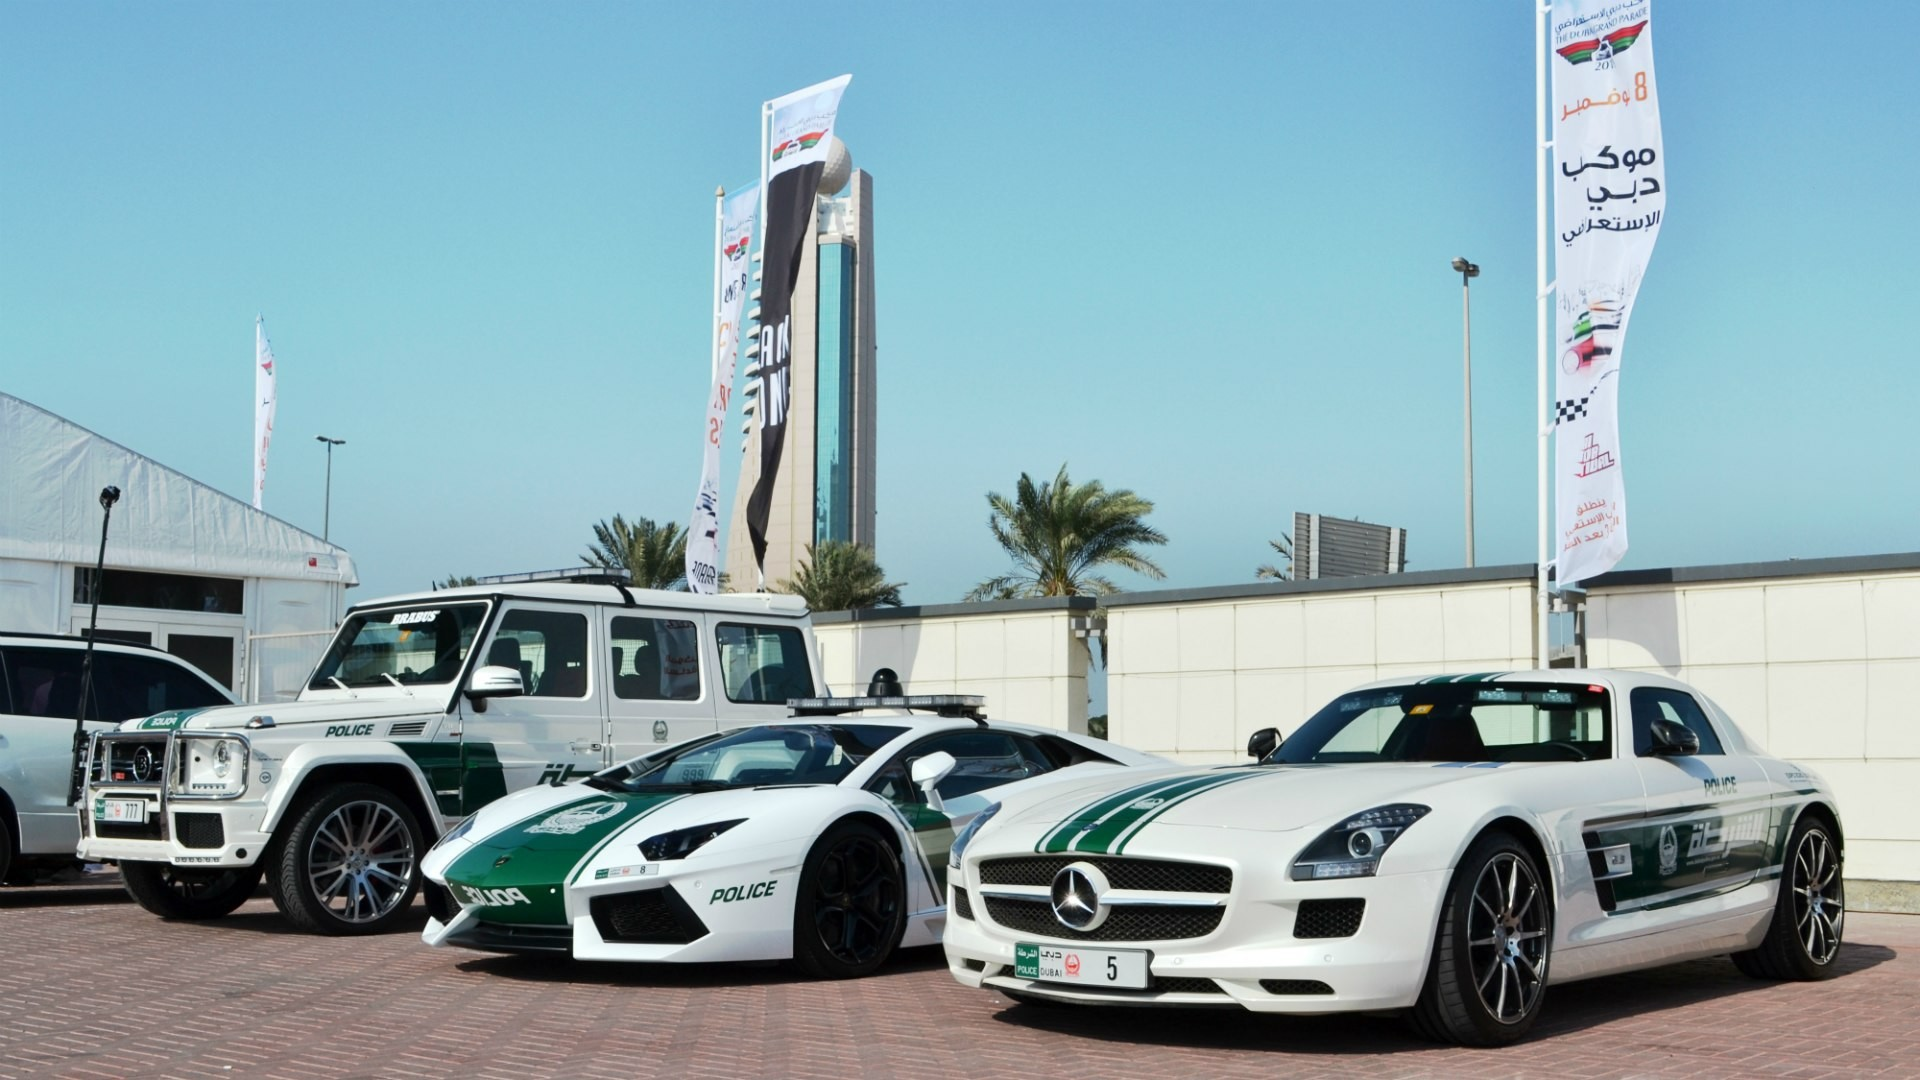 Res: 1920x1080, Dubai Cars Wallpaper Widescreen